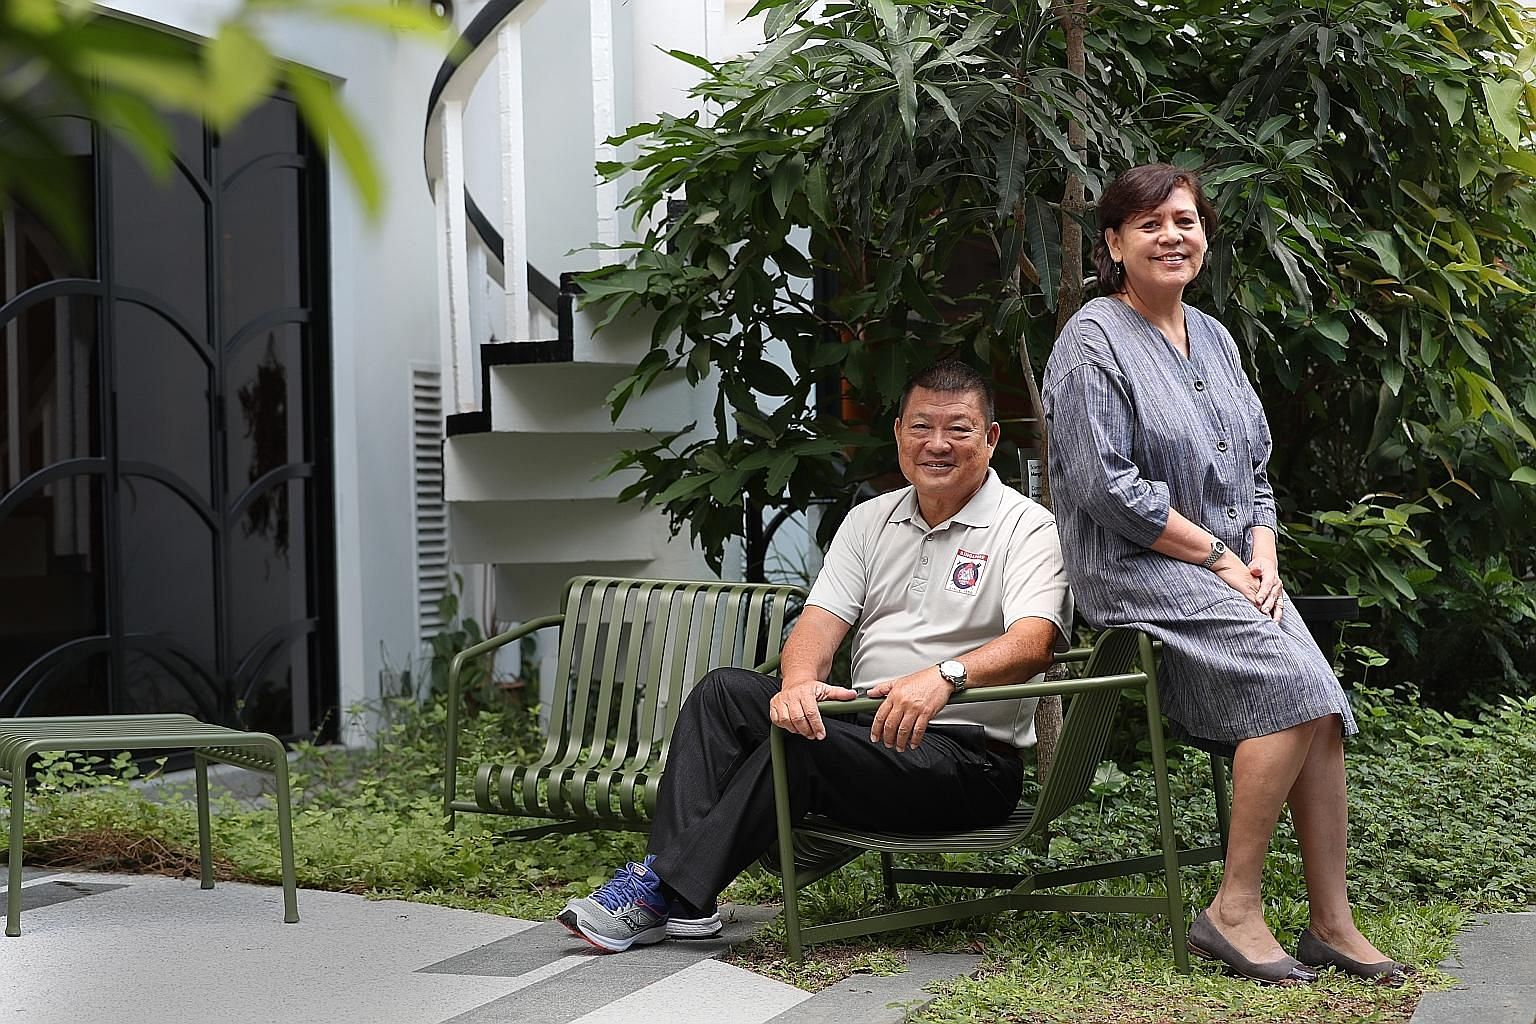 Mr George Lee Song Choo plays one of the main characters in the film A Lifesaver's Passion, which is partly inspired by his experiences, while Ms Barbara D'Cotta inspired the film titled A Teacher's Education.